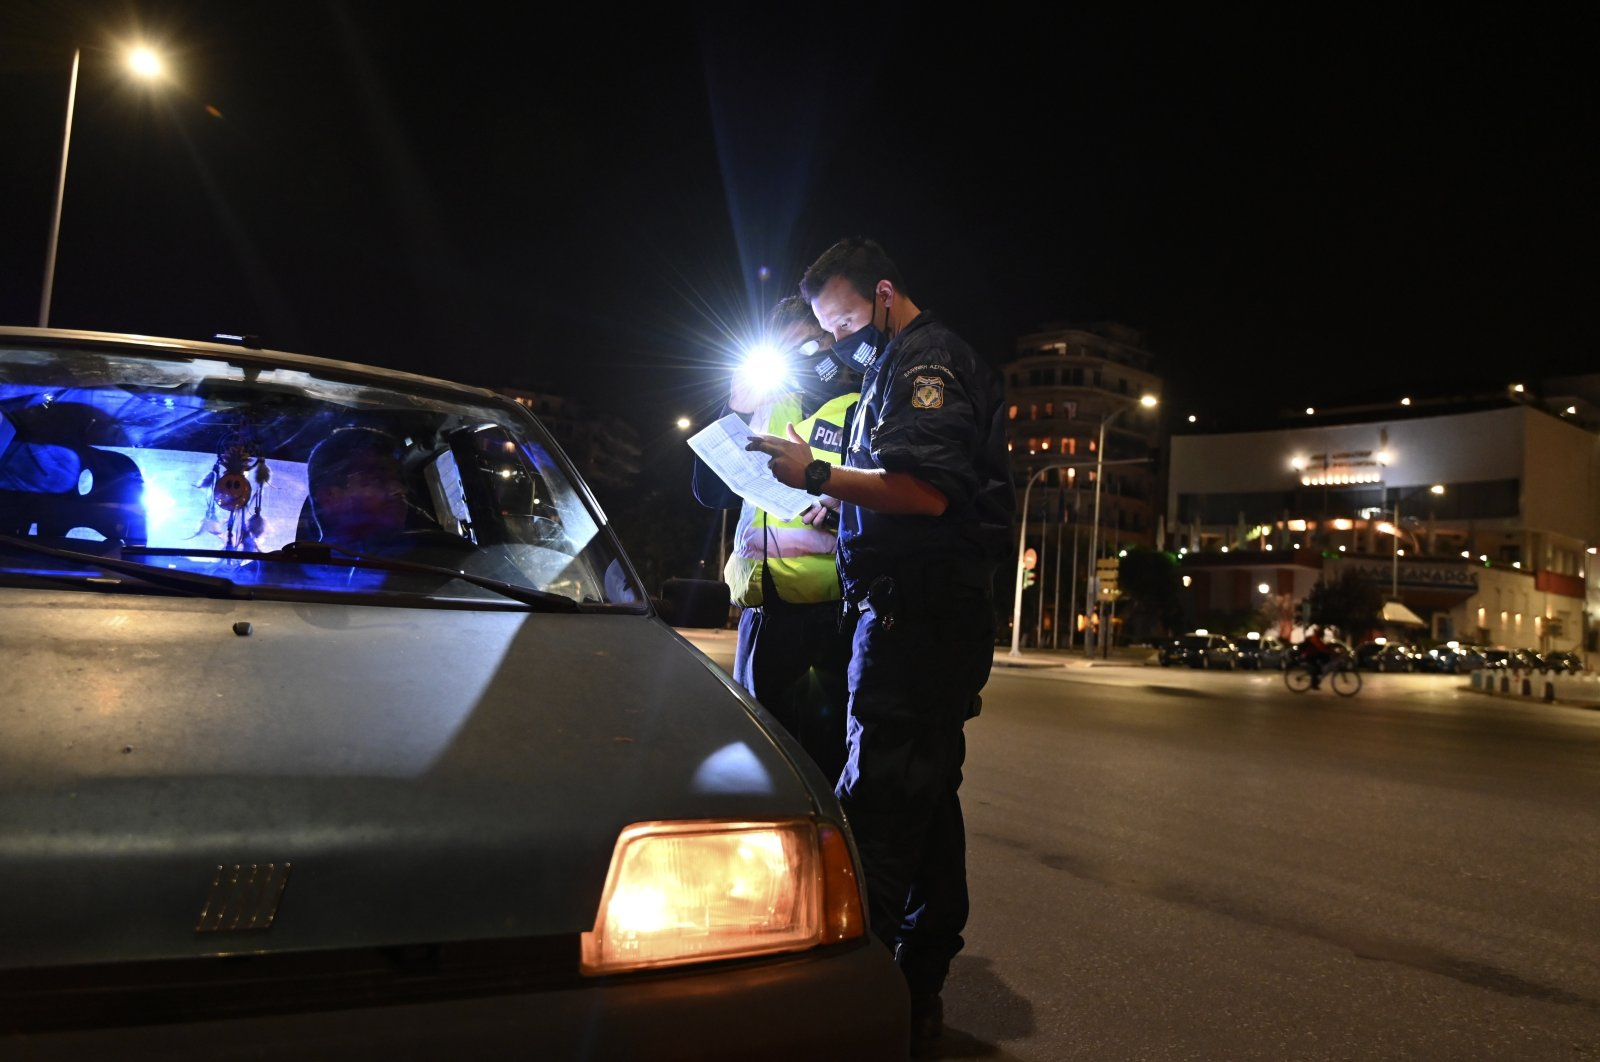 Police check the documents of a driver during the lockdown to contain the spread of COVID-19 in the northern city of Thessaloniki, Greece, Tuesday, Nov. 3, 2020. (AP Photo)